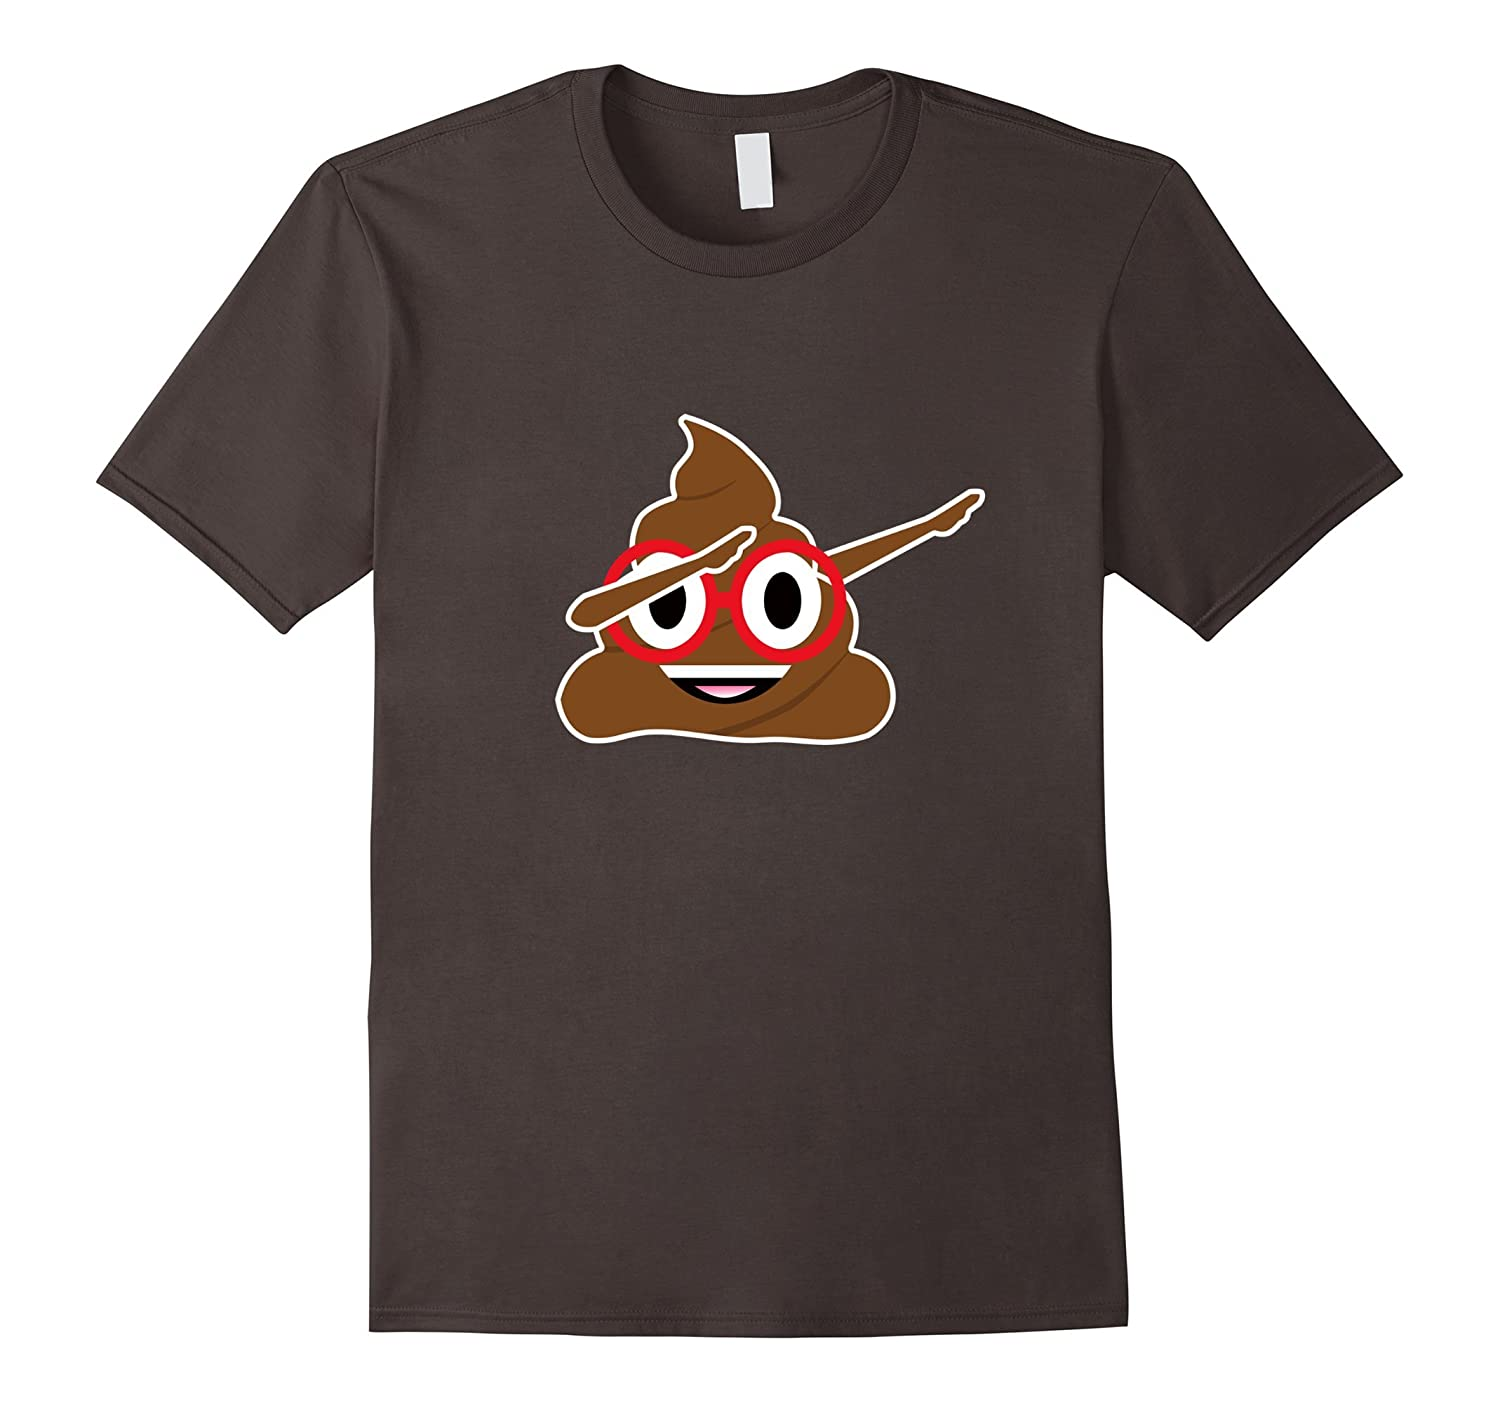 Funny Dabbing Poop Emoji T-Shirt With Red Glasses